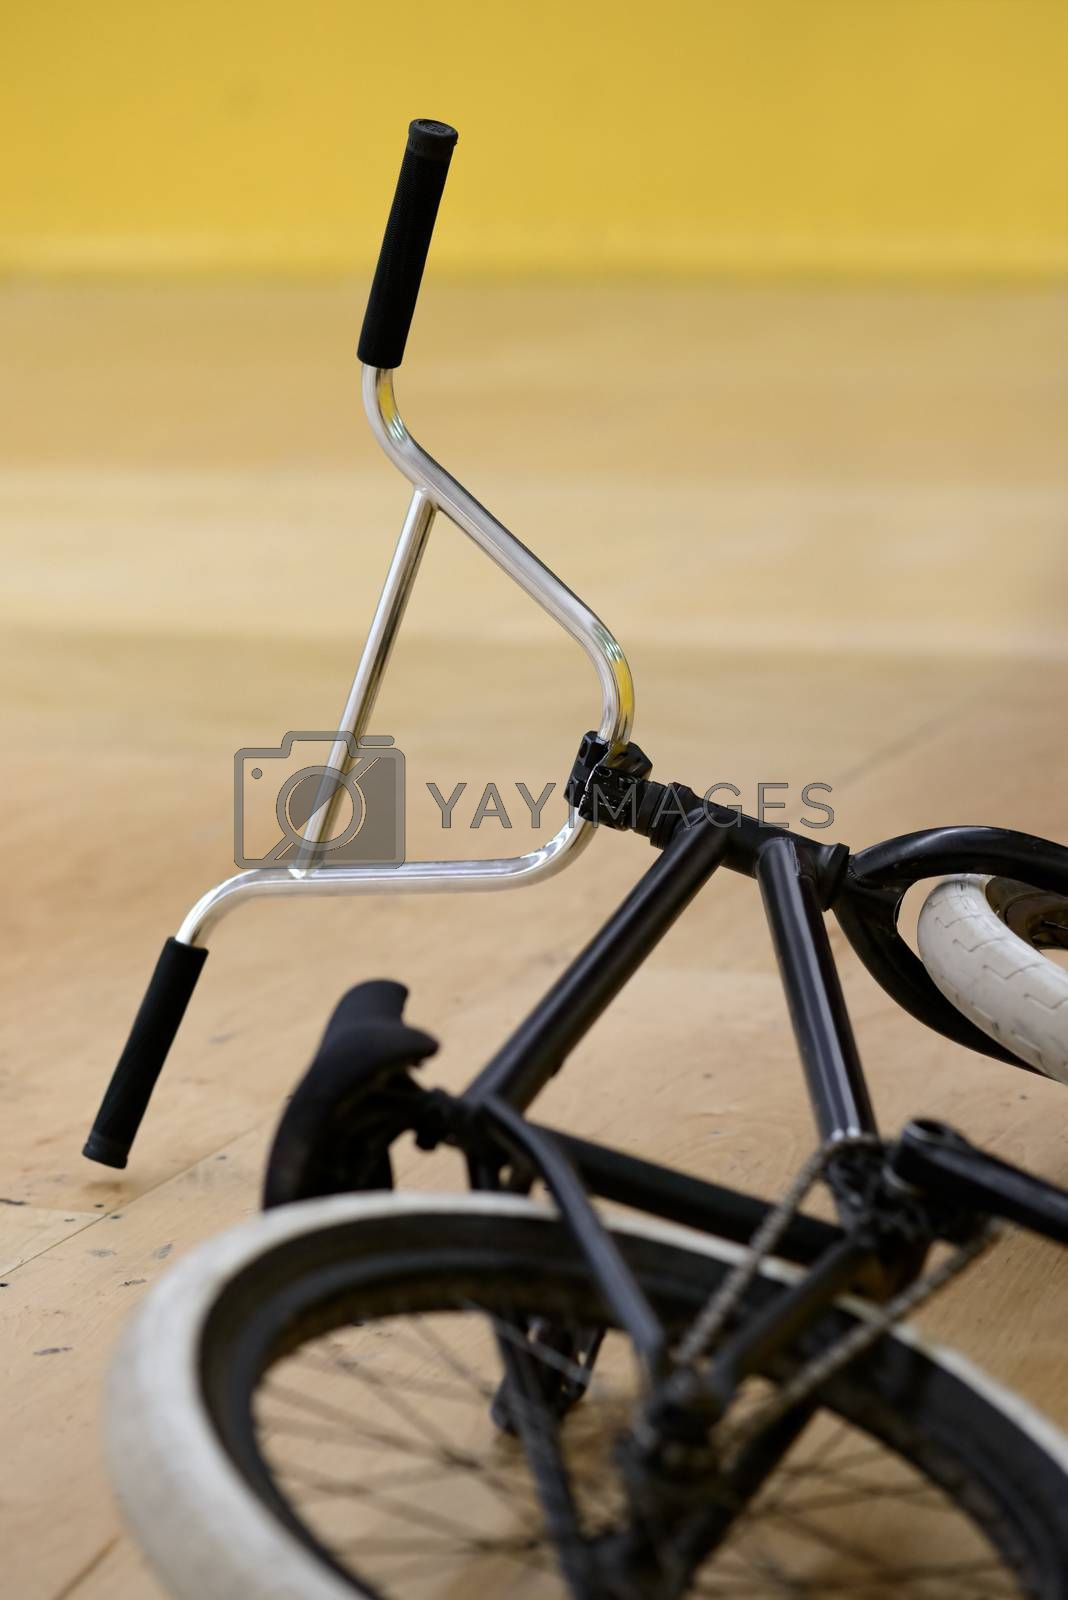 Black BMX Bicycle Lying on the Wooden Floor in the Bike and Skatepark Indoor. Healthy and Active Lifestyle Concept.